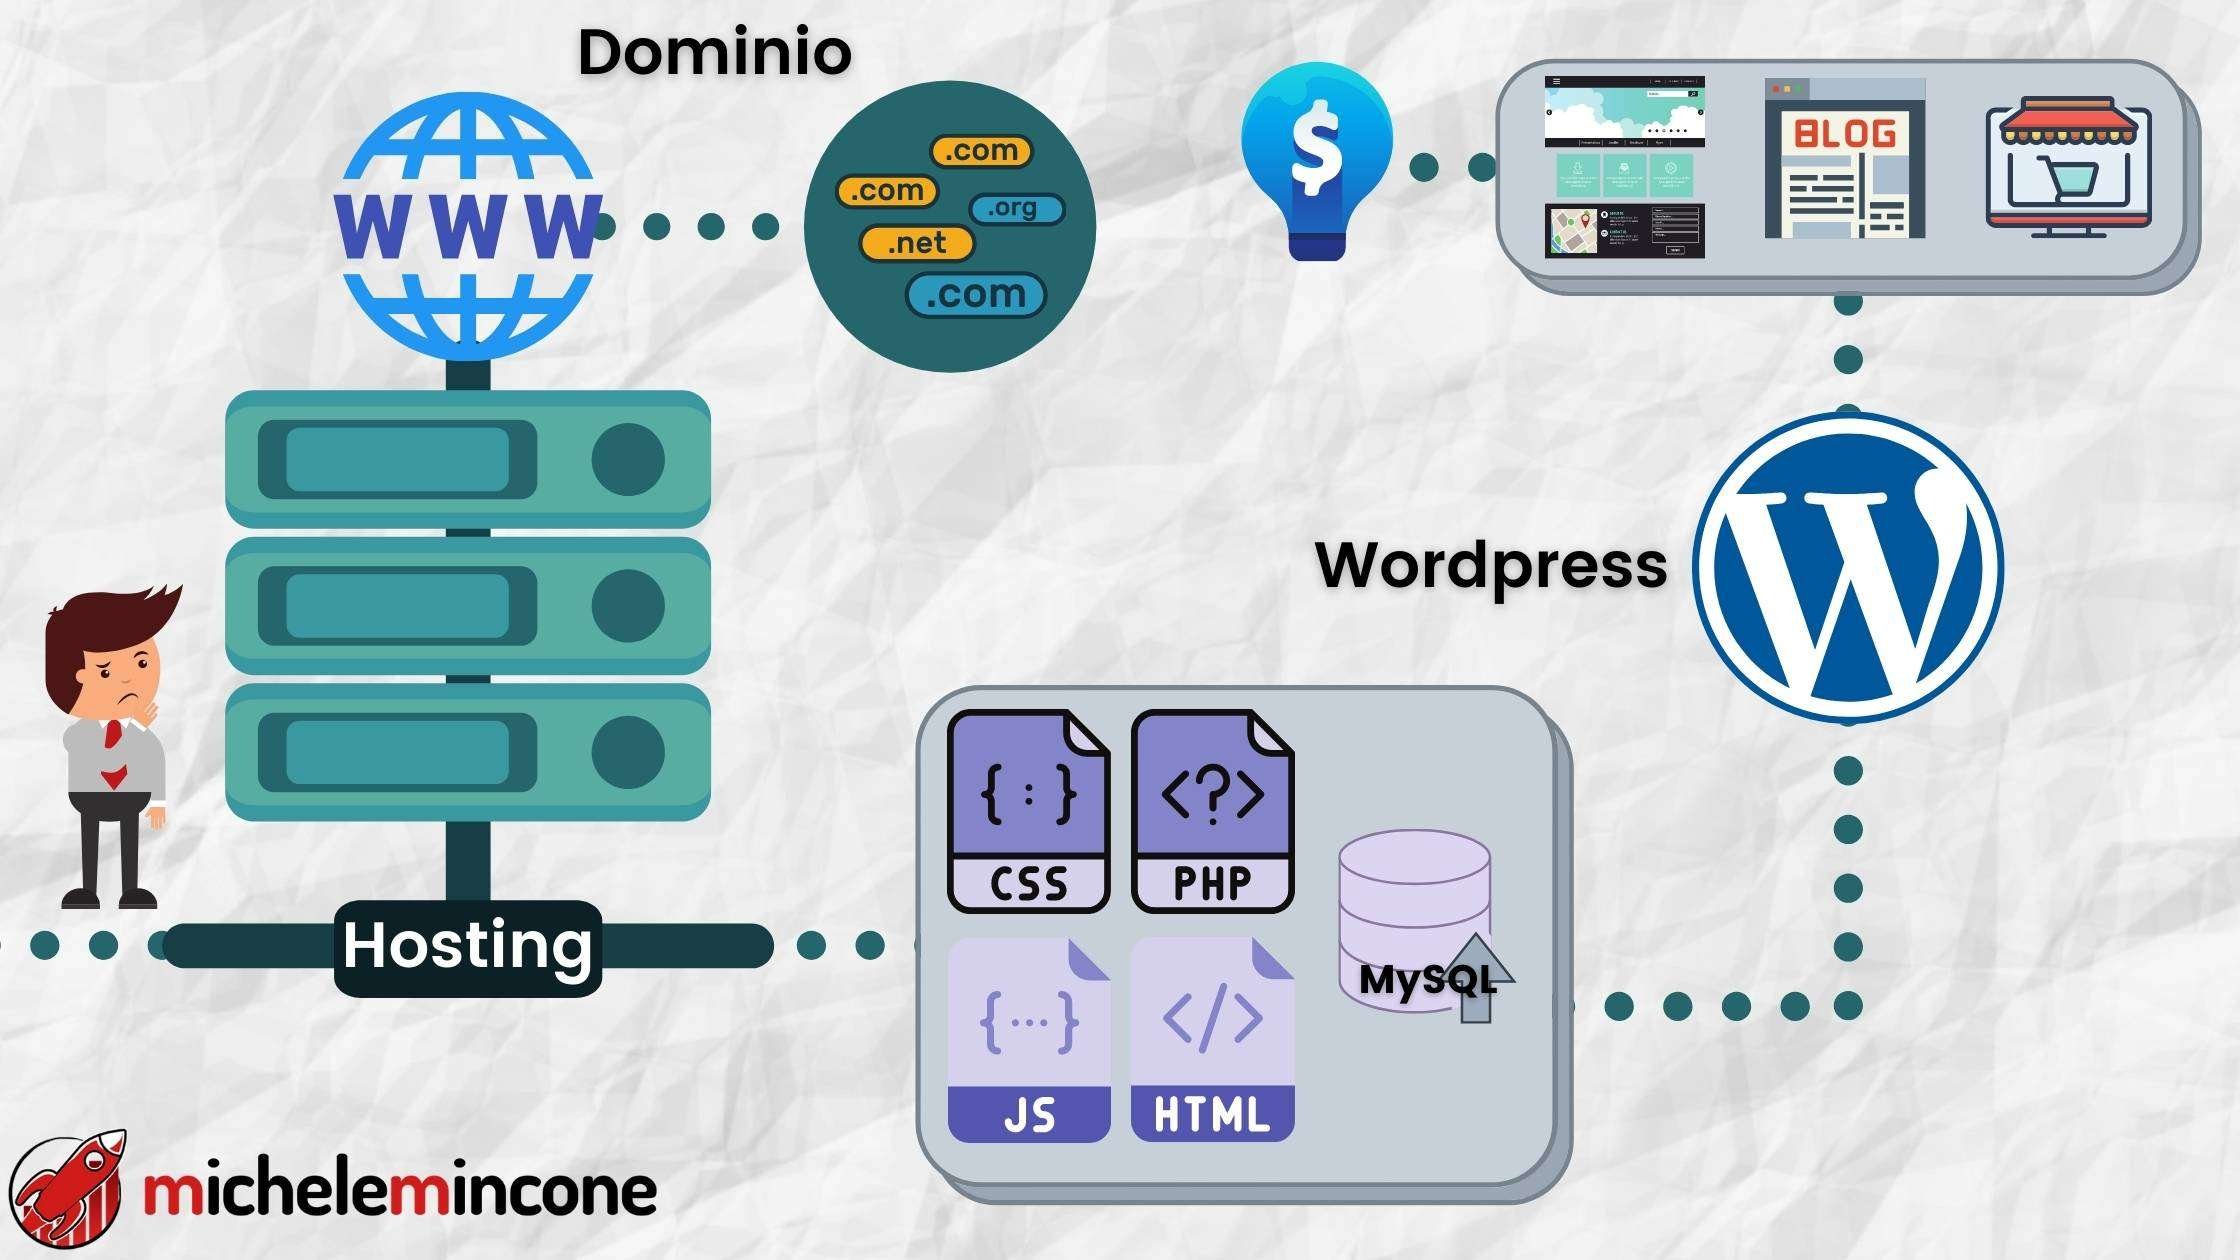 acquistare hosting, dominio e installare wordpress